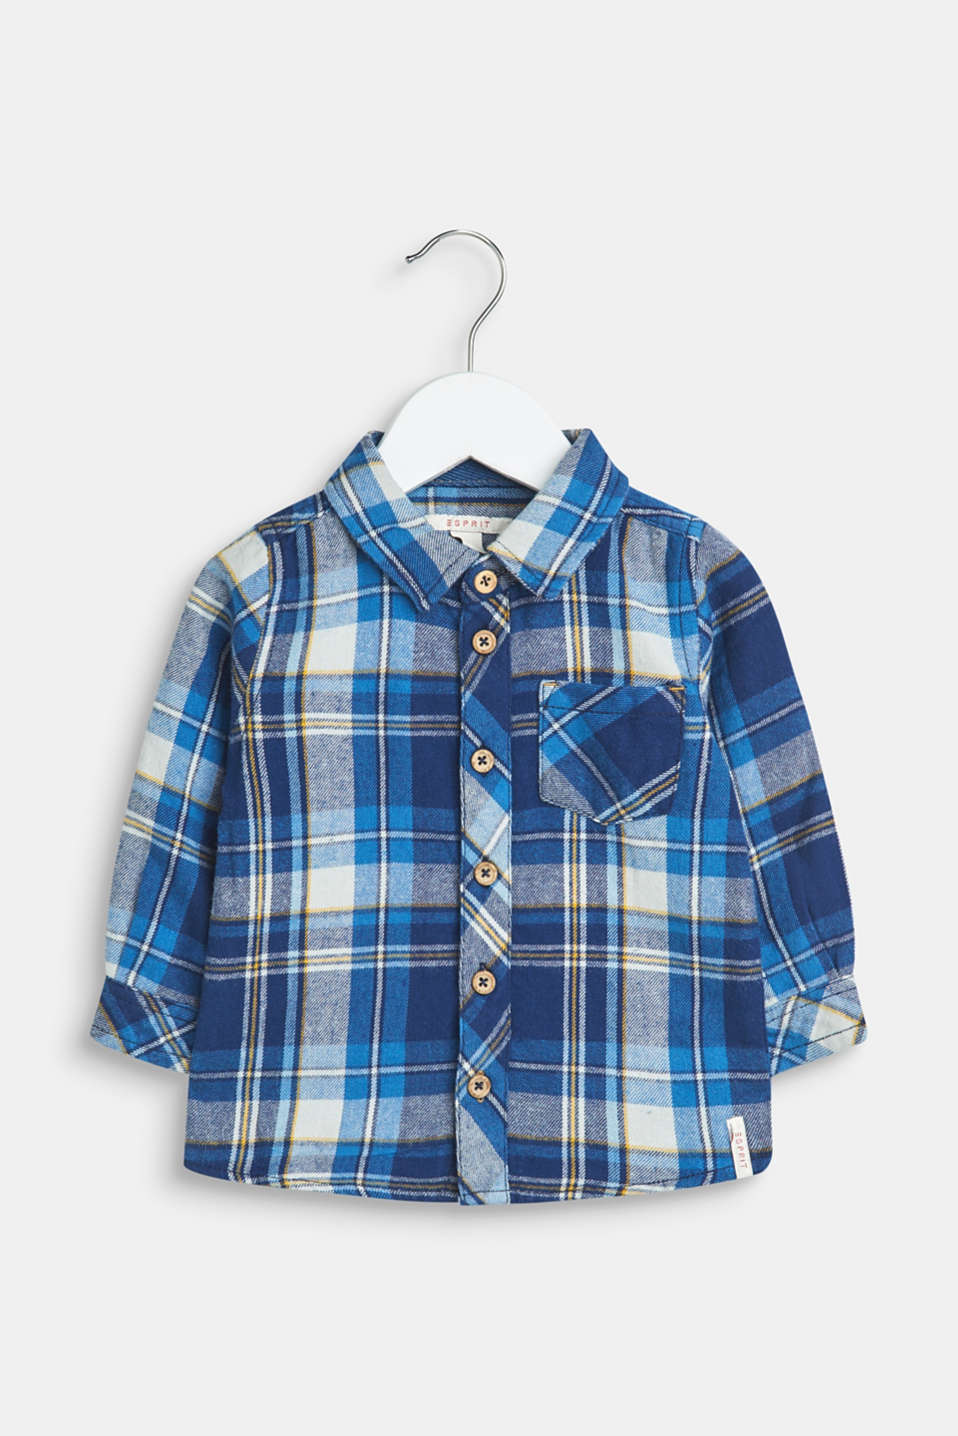 Esprit - Flannel shirt with checks, 100% cotton